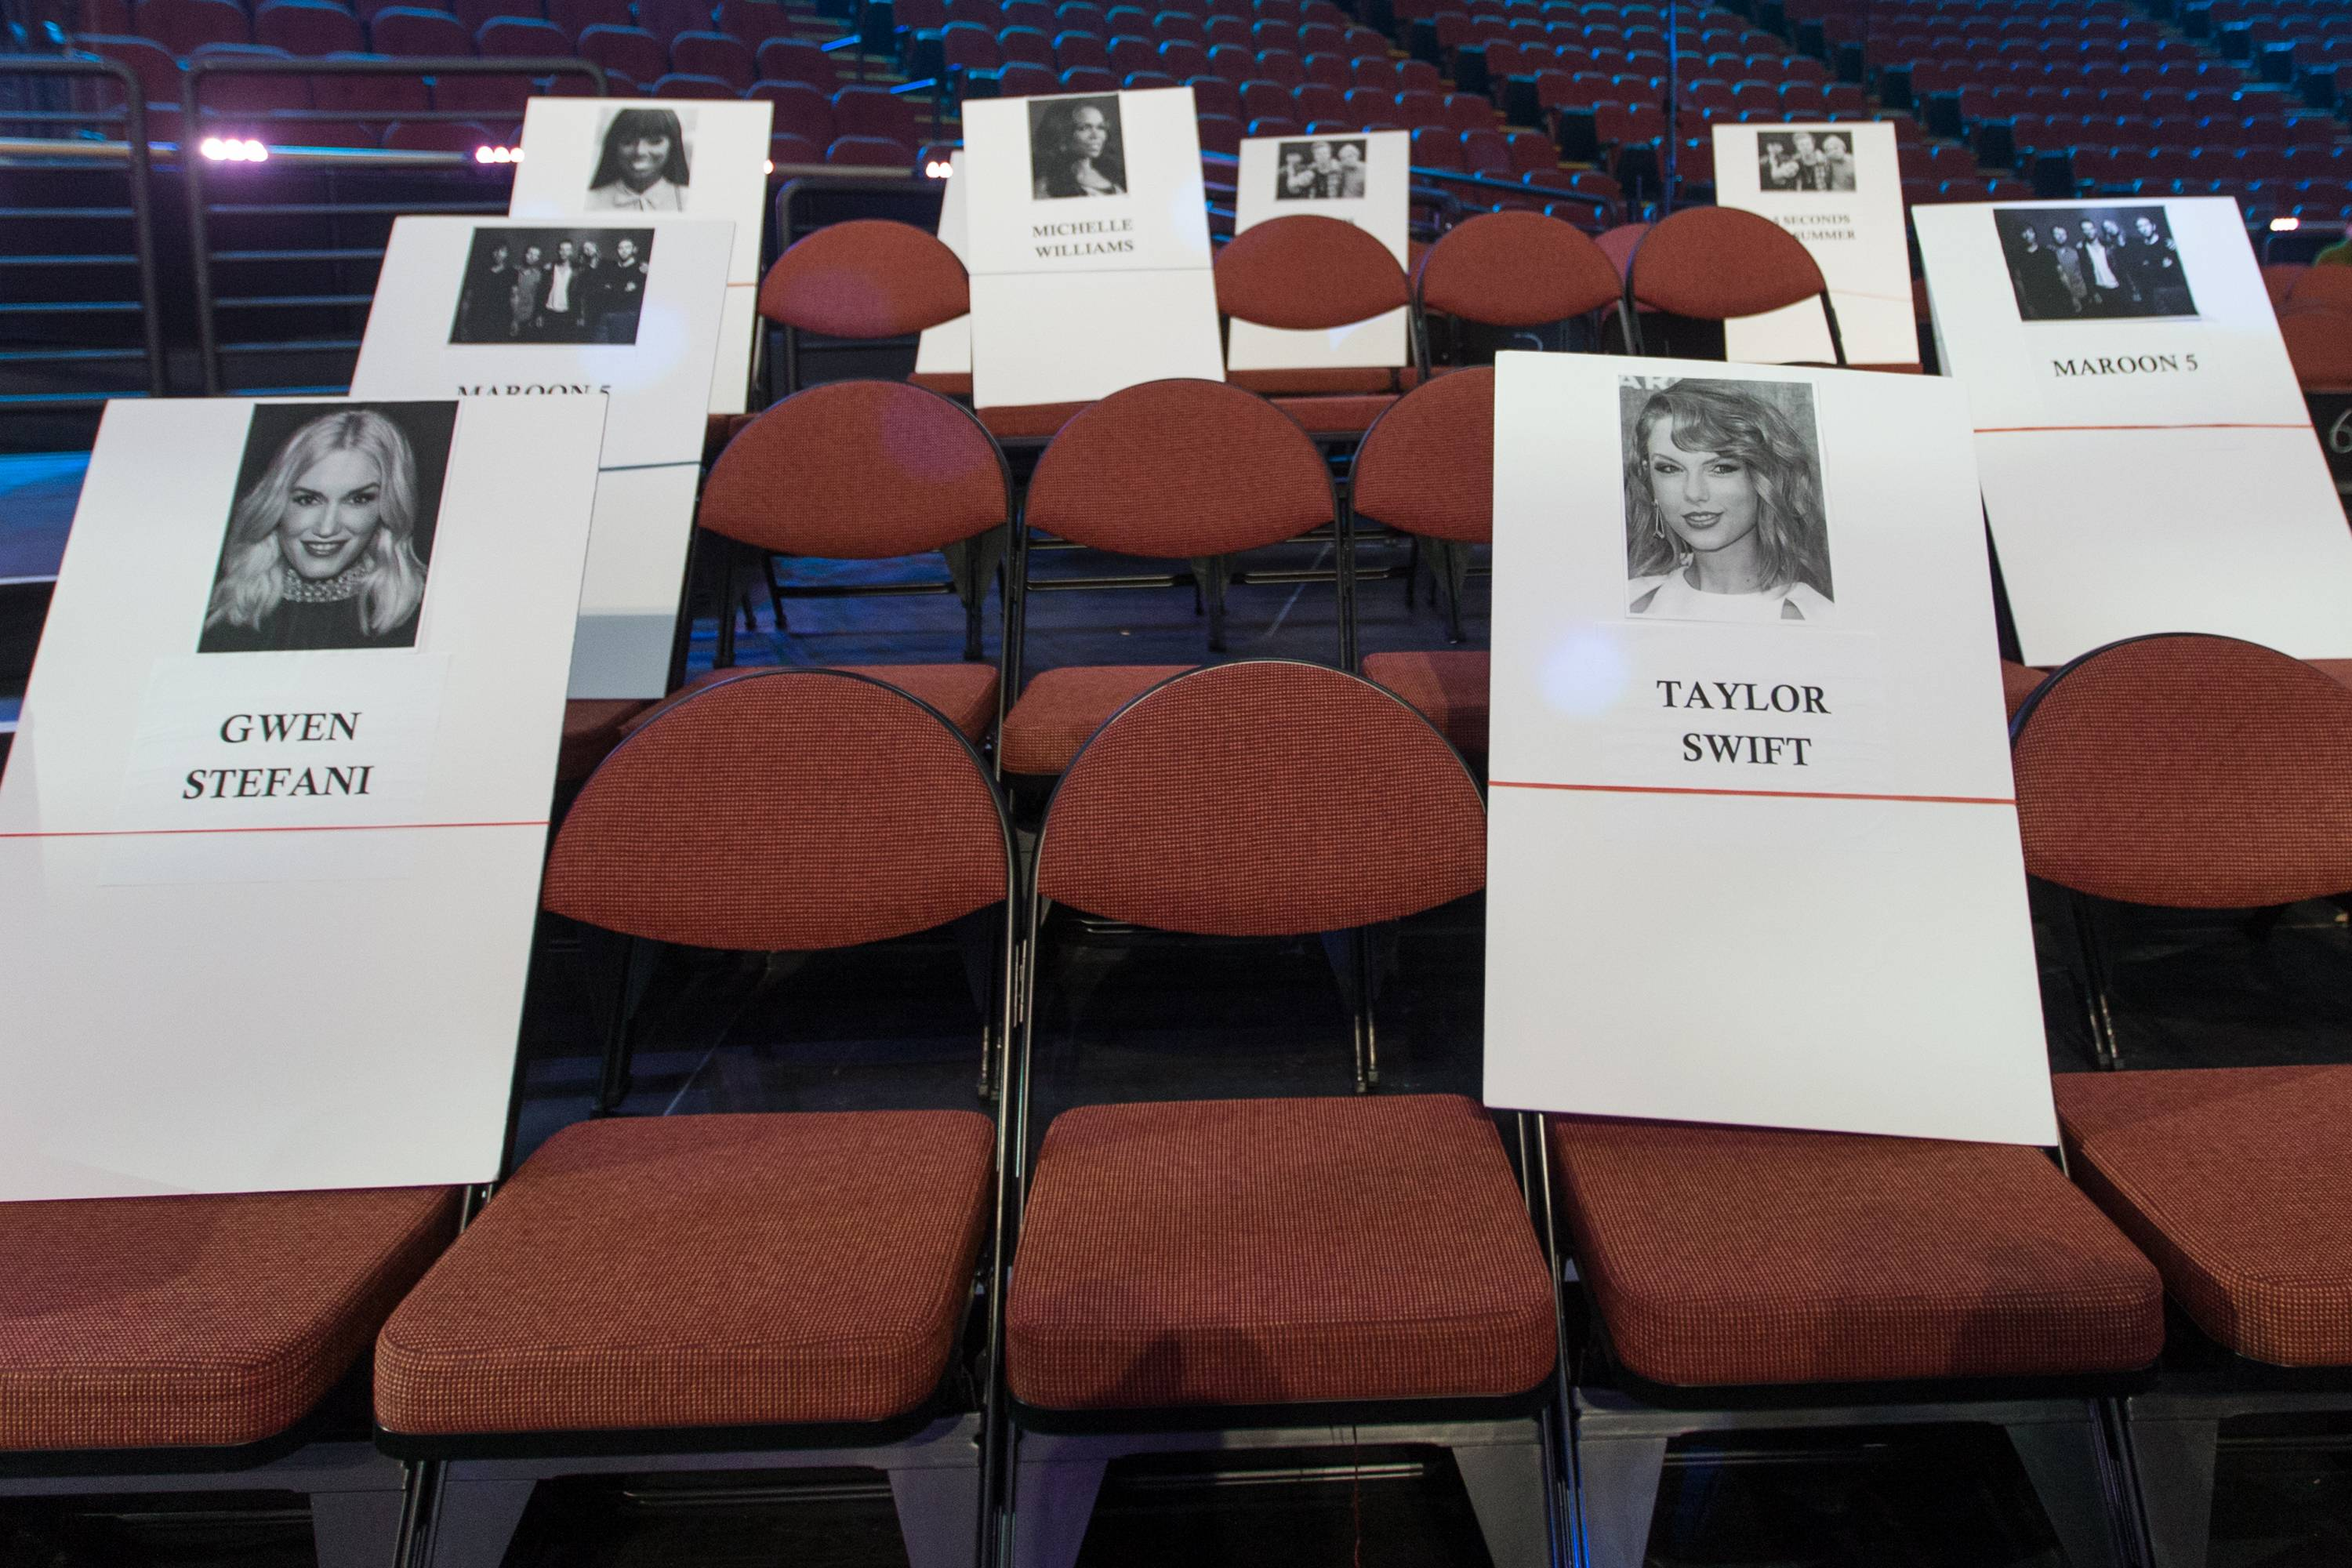 Place holders for musicians Gwen Stefani, front row left, and Taylor Swift, front row right, are displayed during the 2014 MTV Video Music Awards Press Preview Day at the Forum on Thursday in Inglewood, Calif.